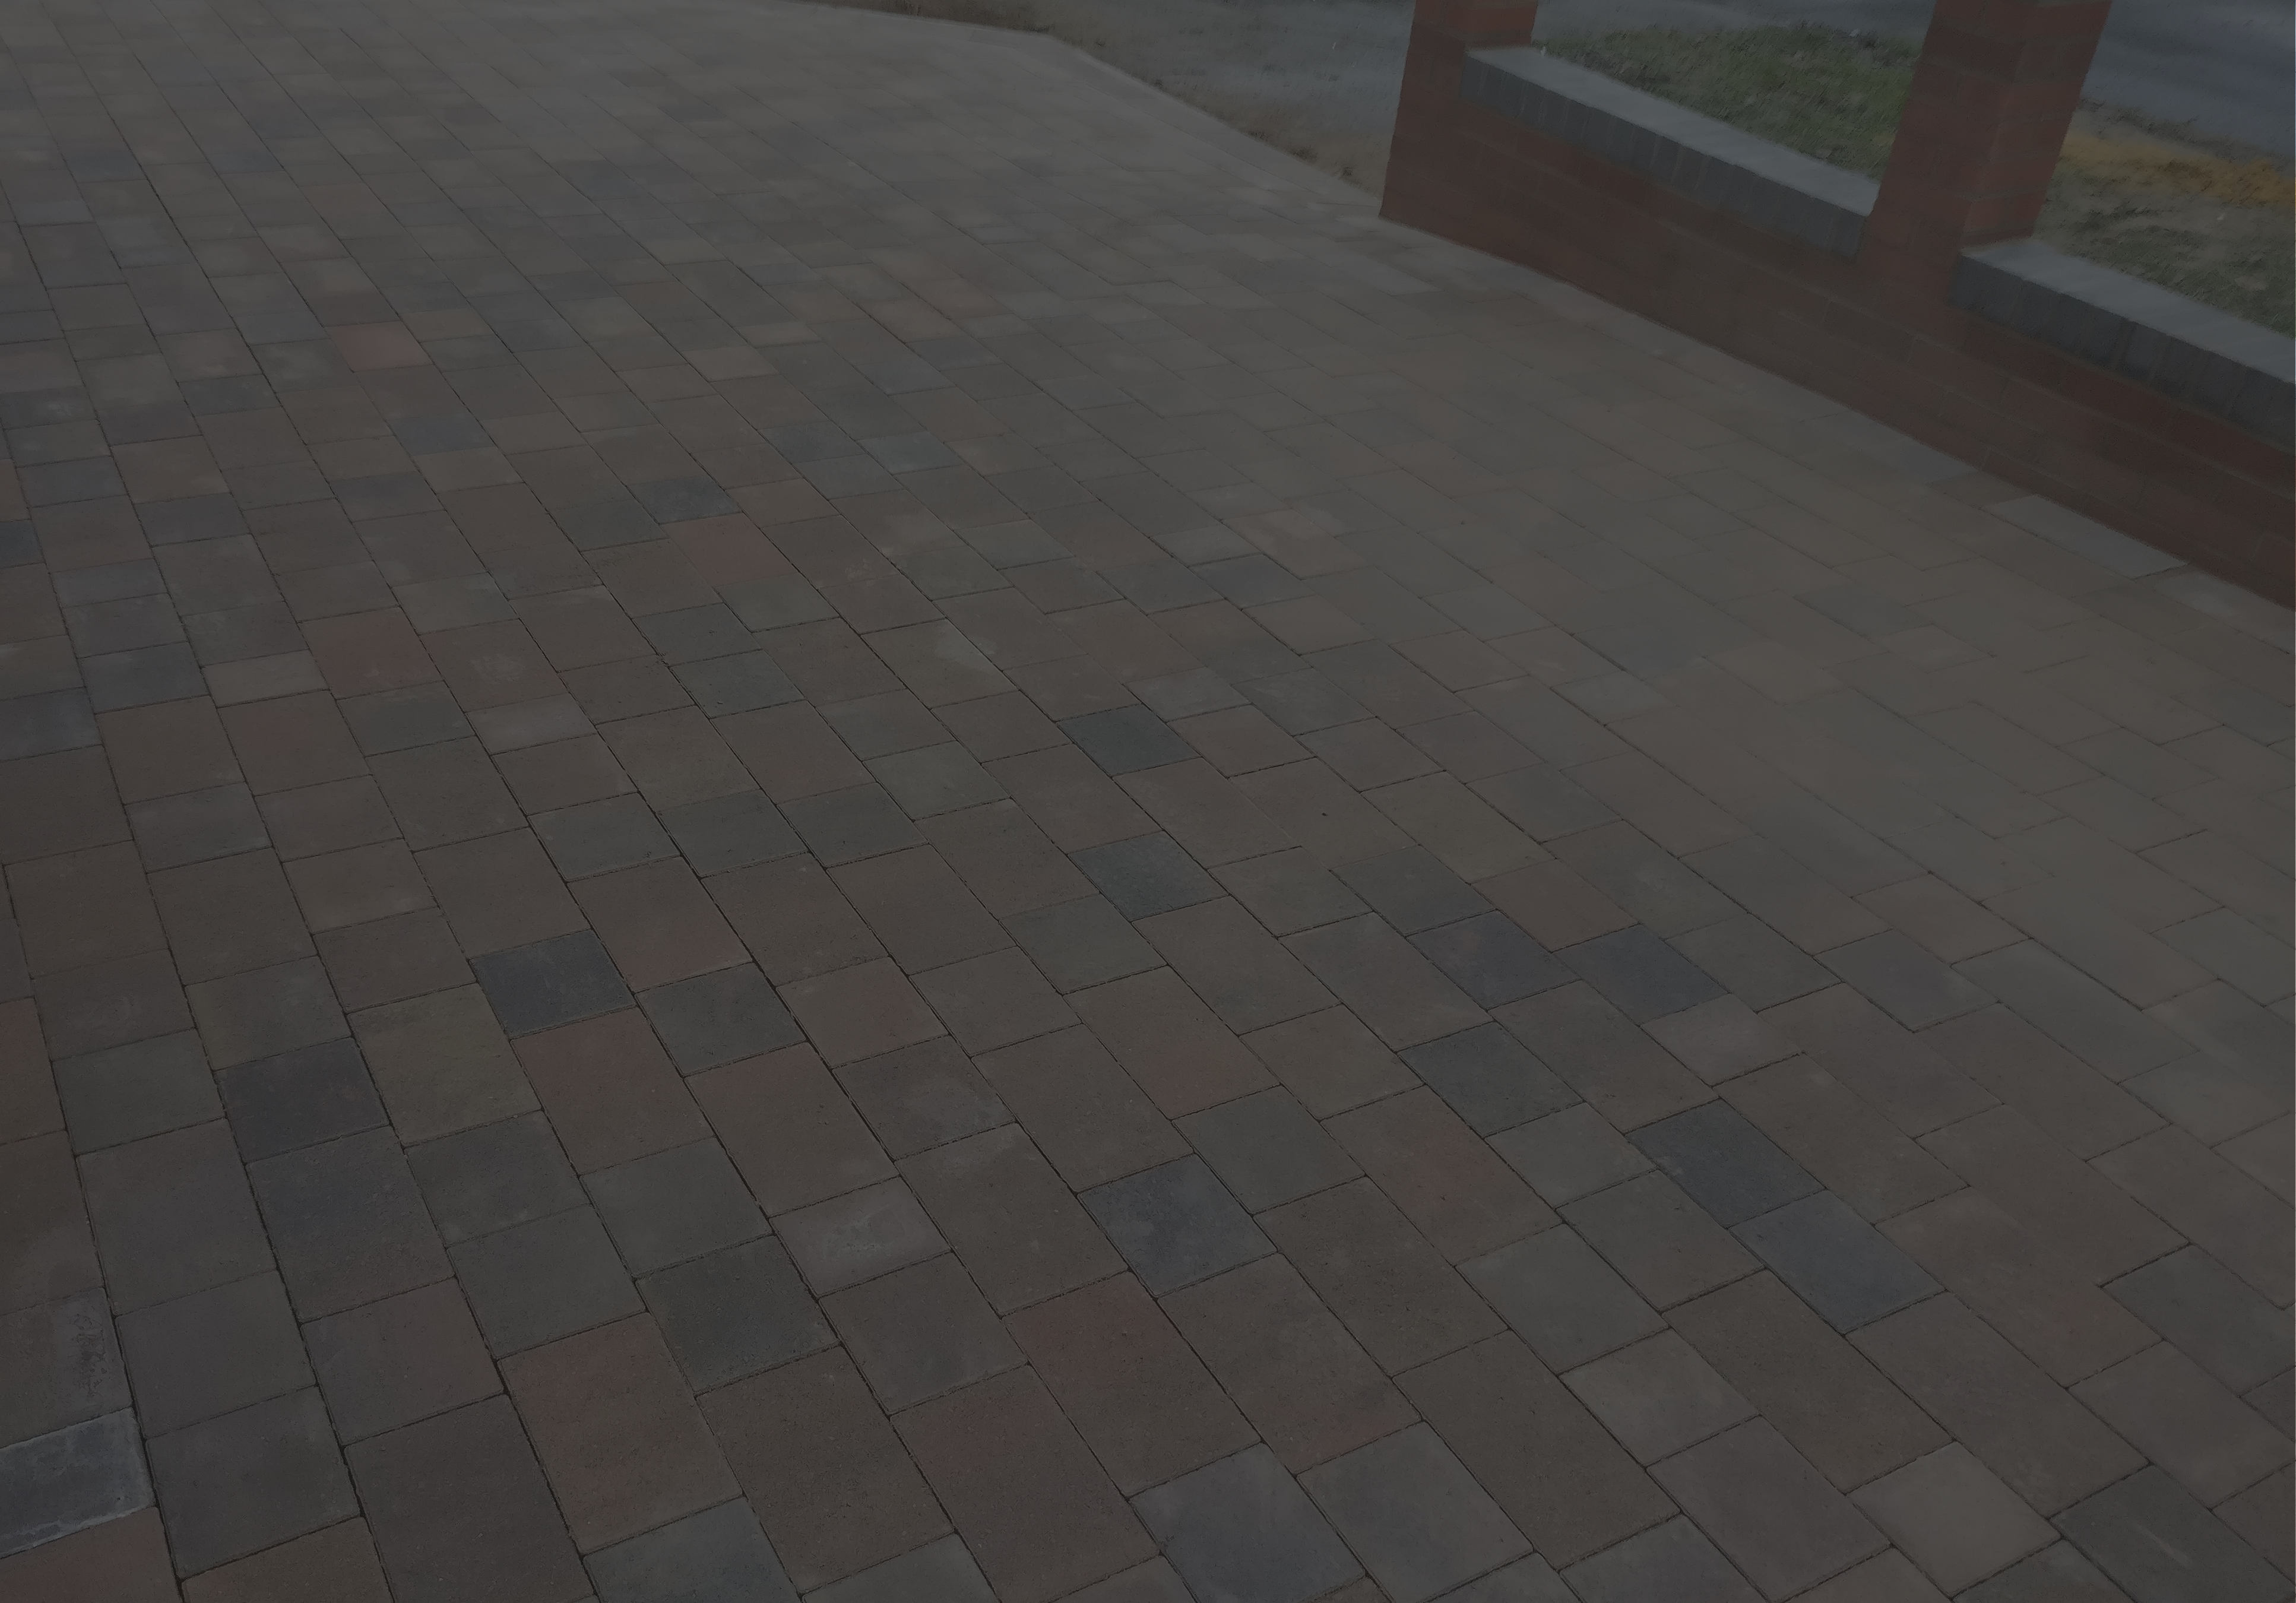 Block Paved Driveway with brick wall and rails.